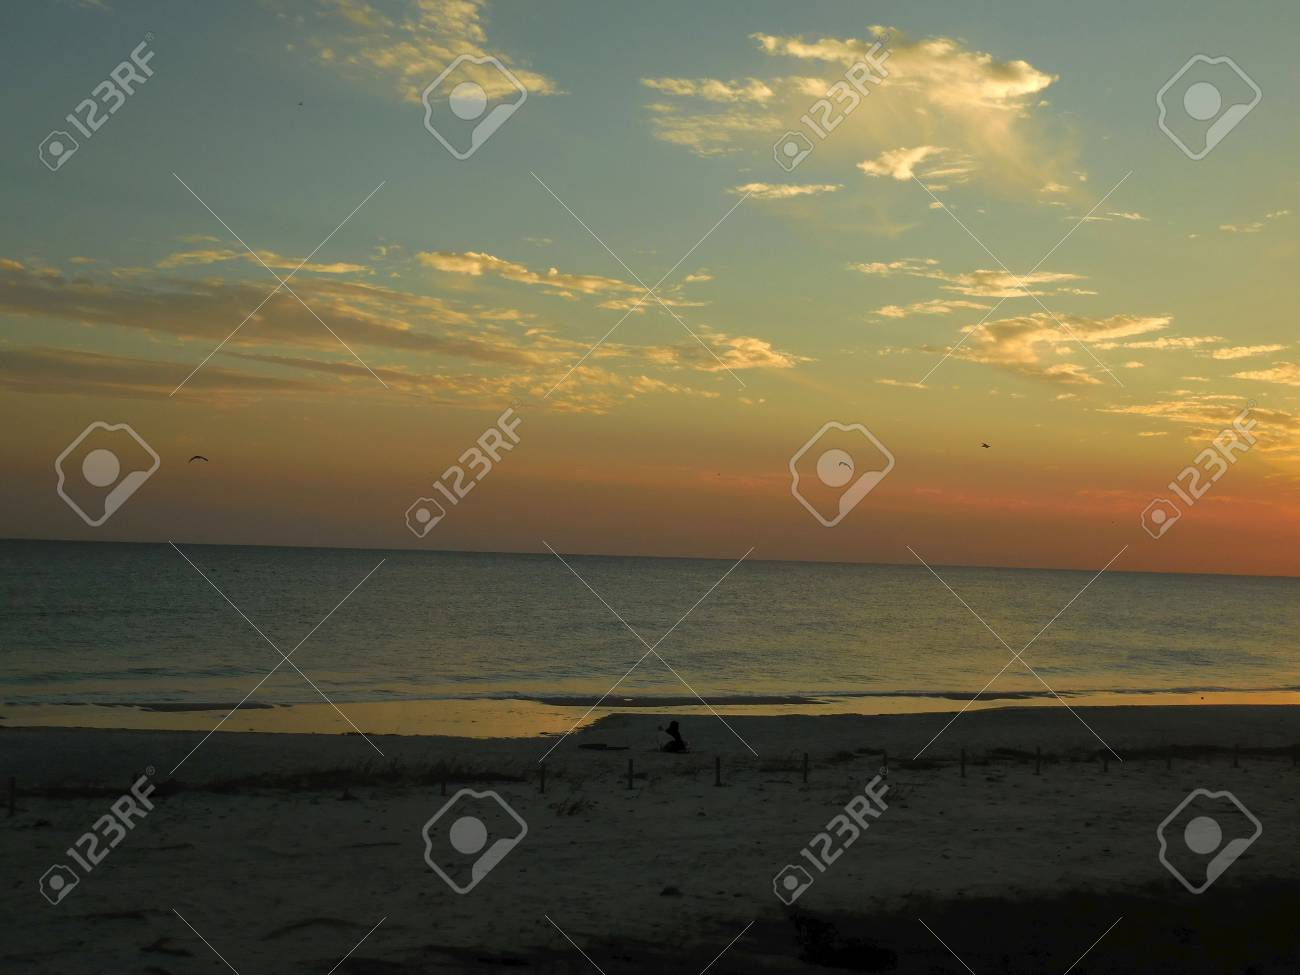 Sunset at the beach Stock Photo - 75202079